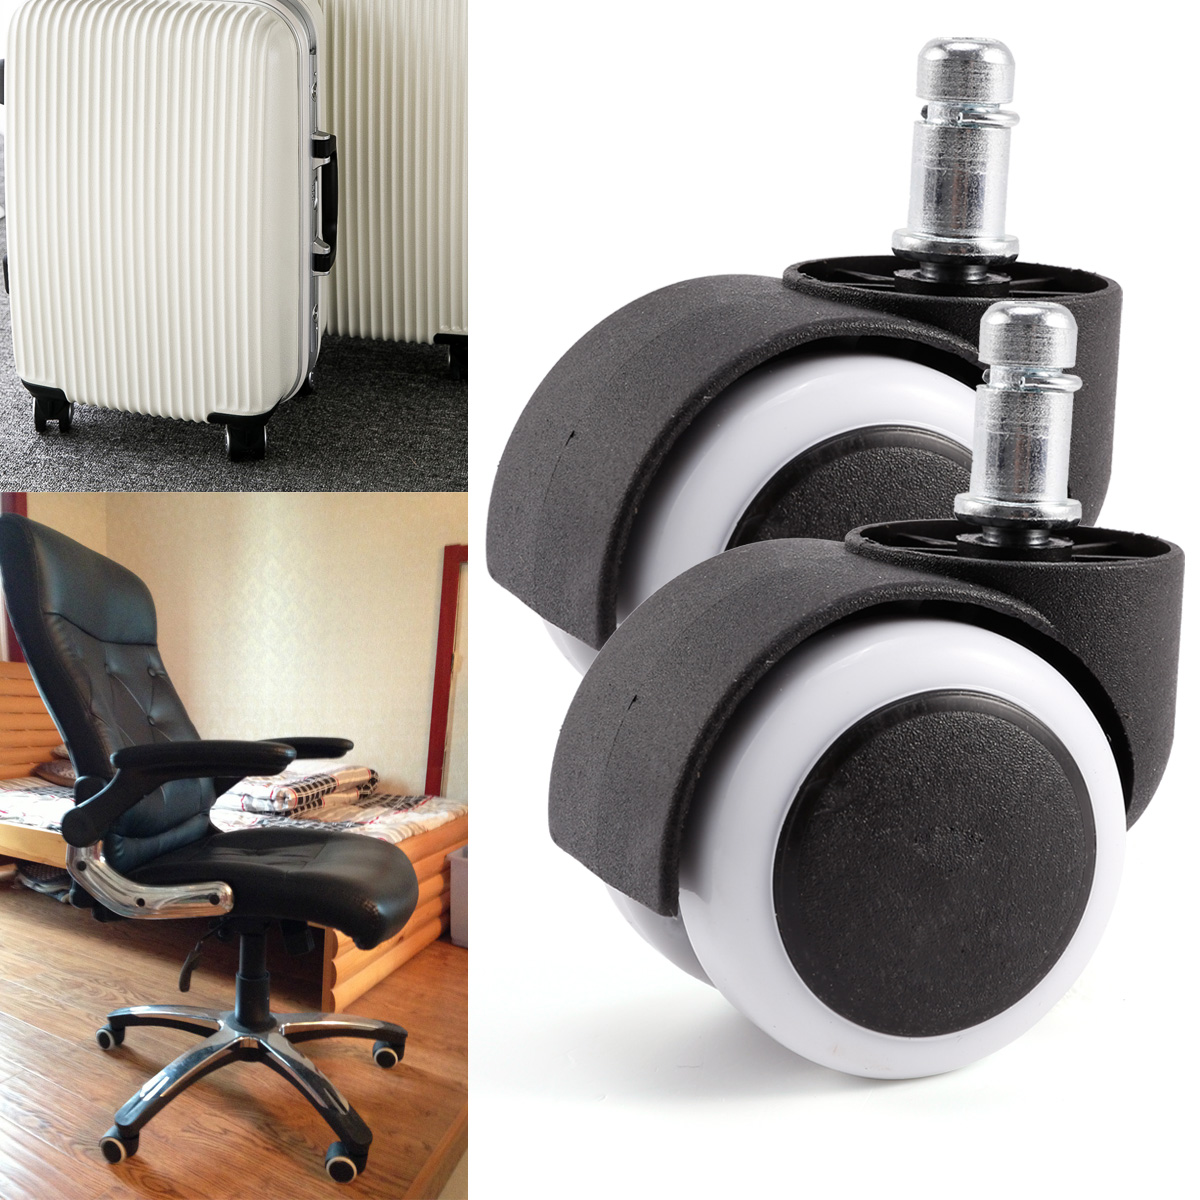 office chairs with wheels wwe ppv chair collection new 10pcs polyurethane rubber casters